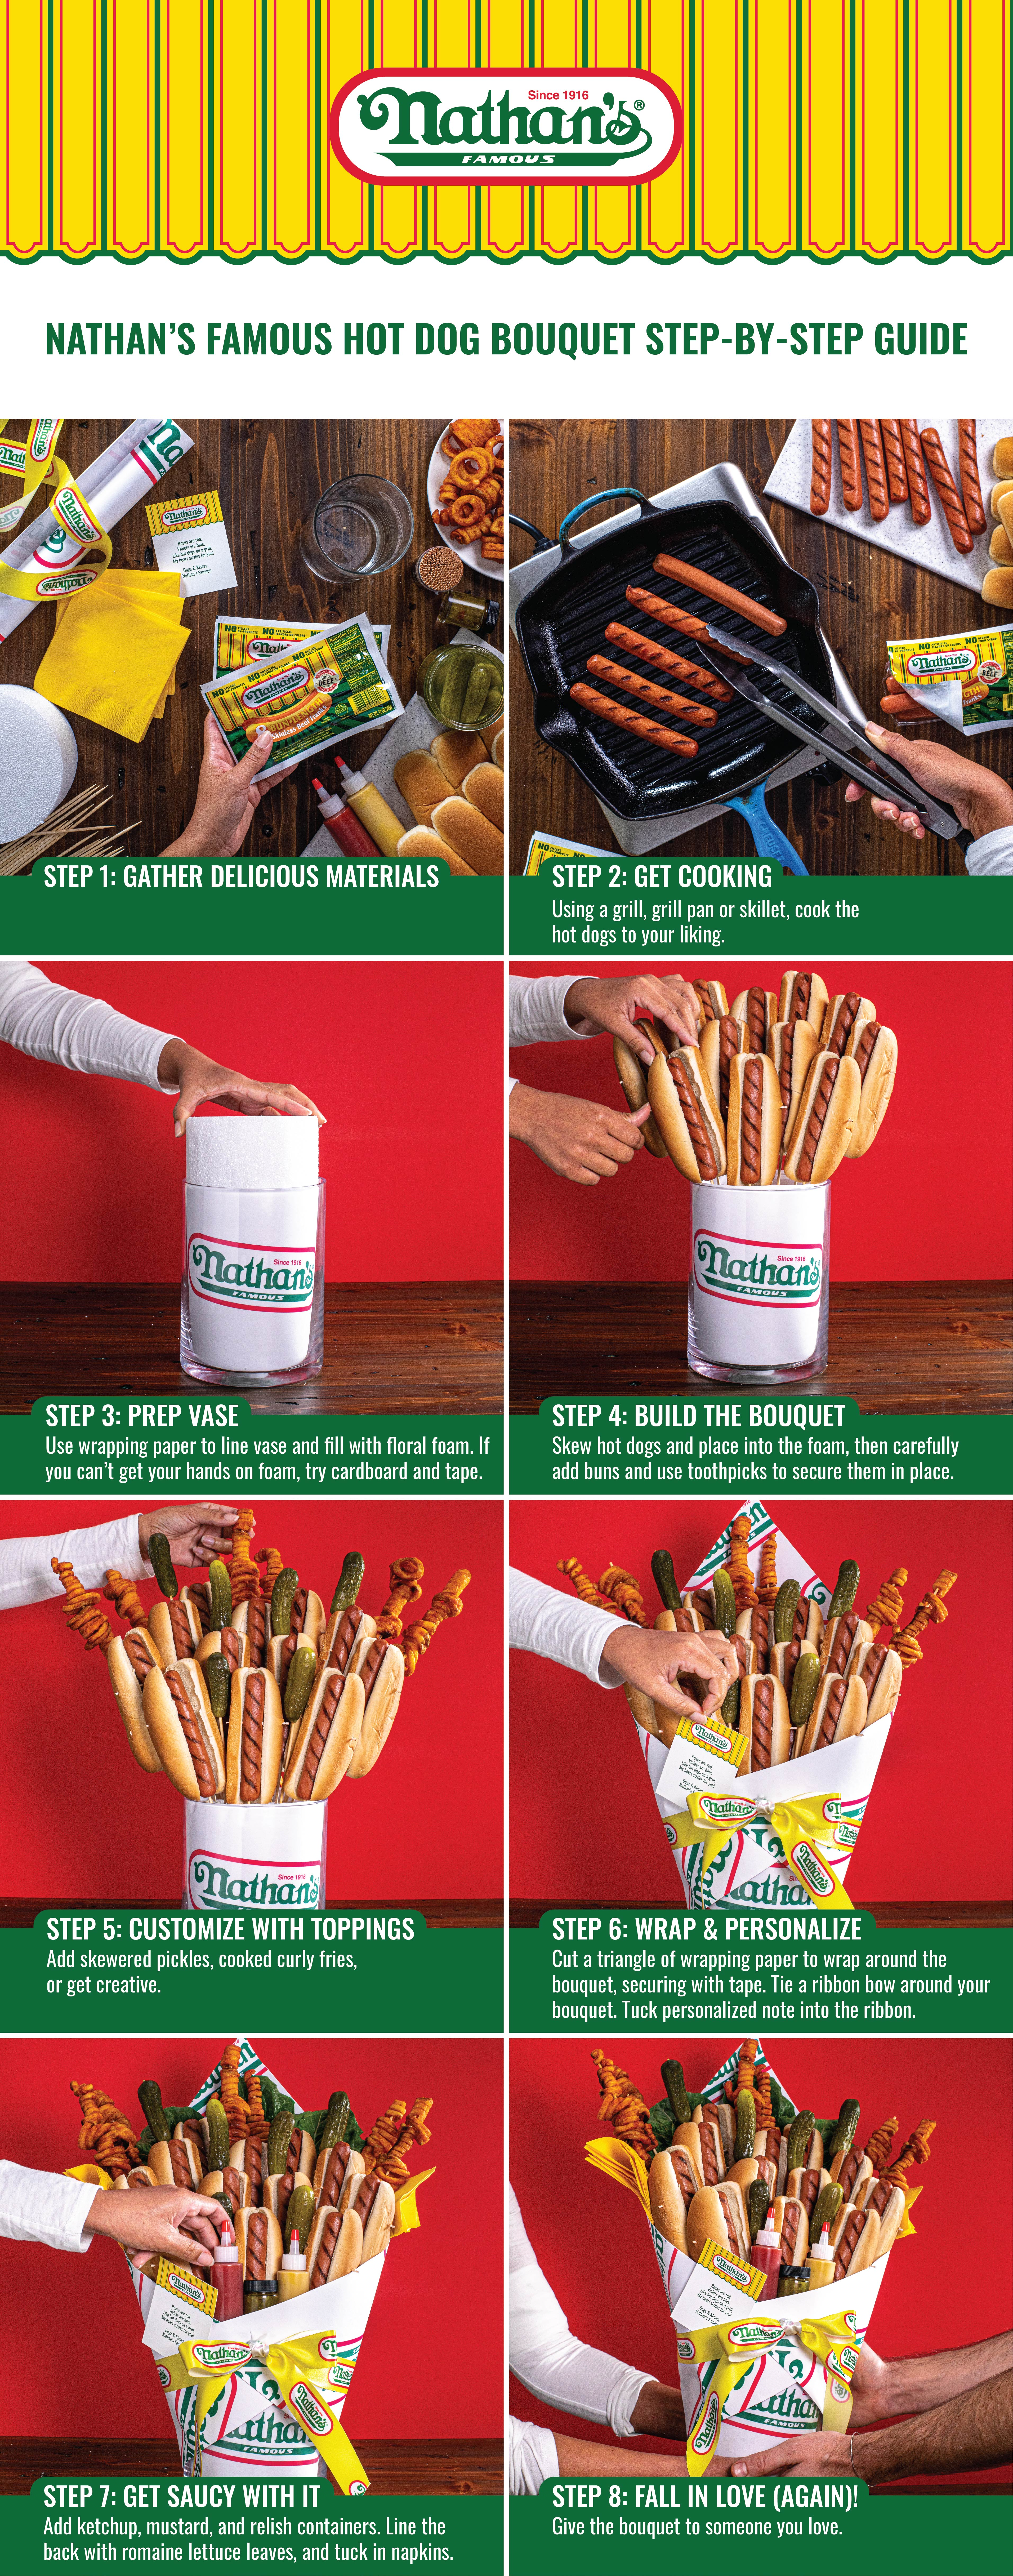 Nathan's Famous Releases Hot Dog Bouquet Tutorial for an Unexpected Gift This Valentine's Day